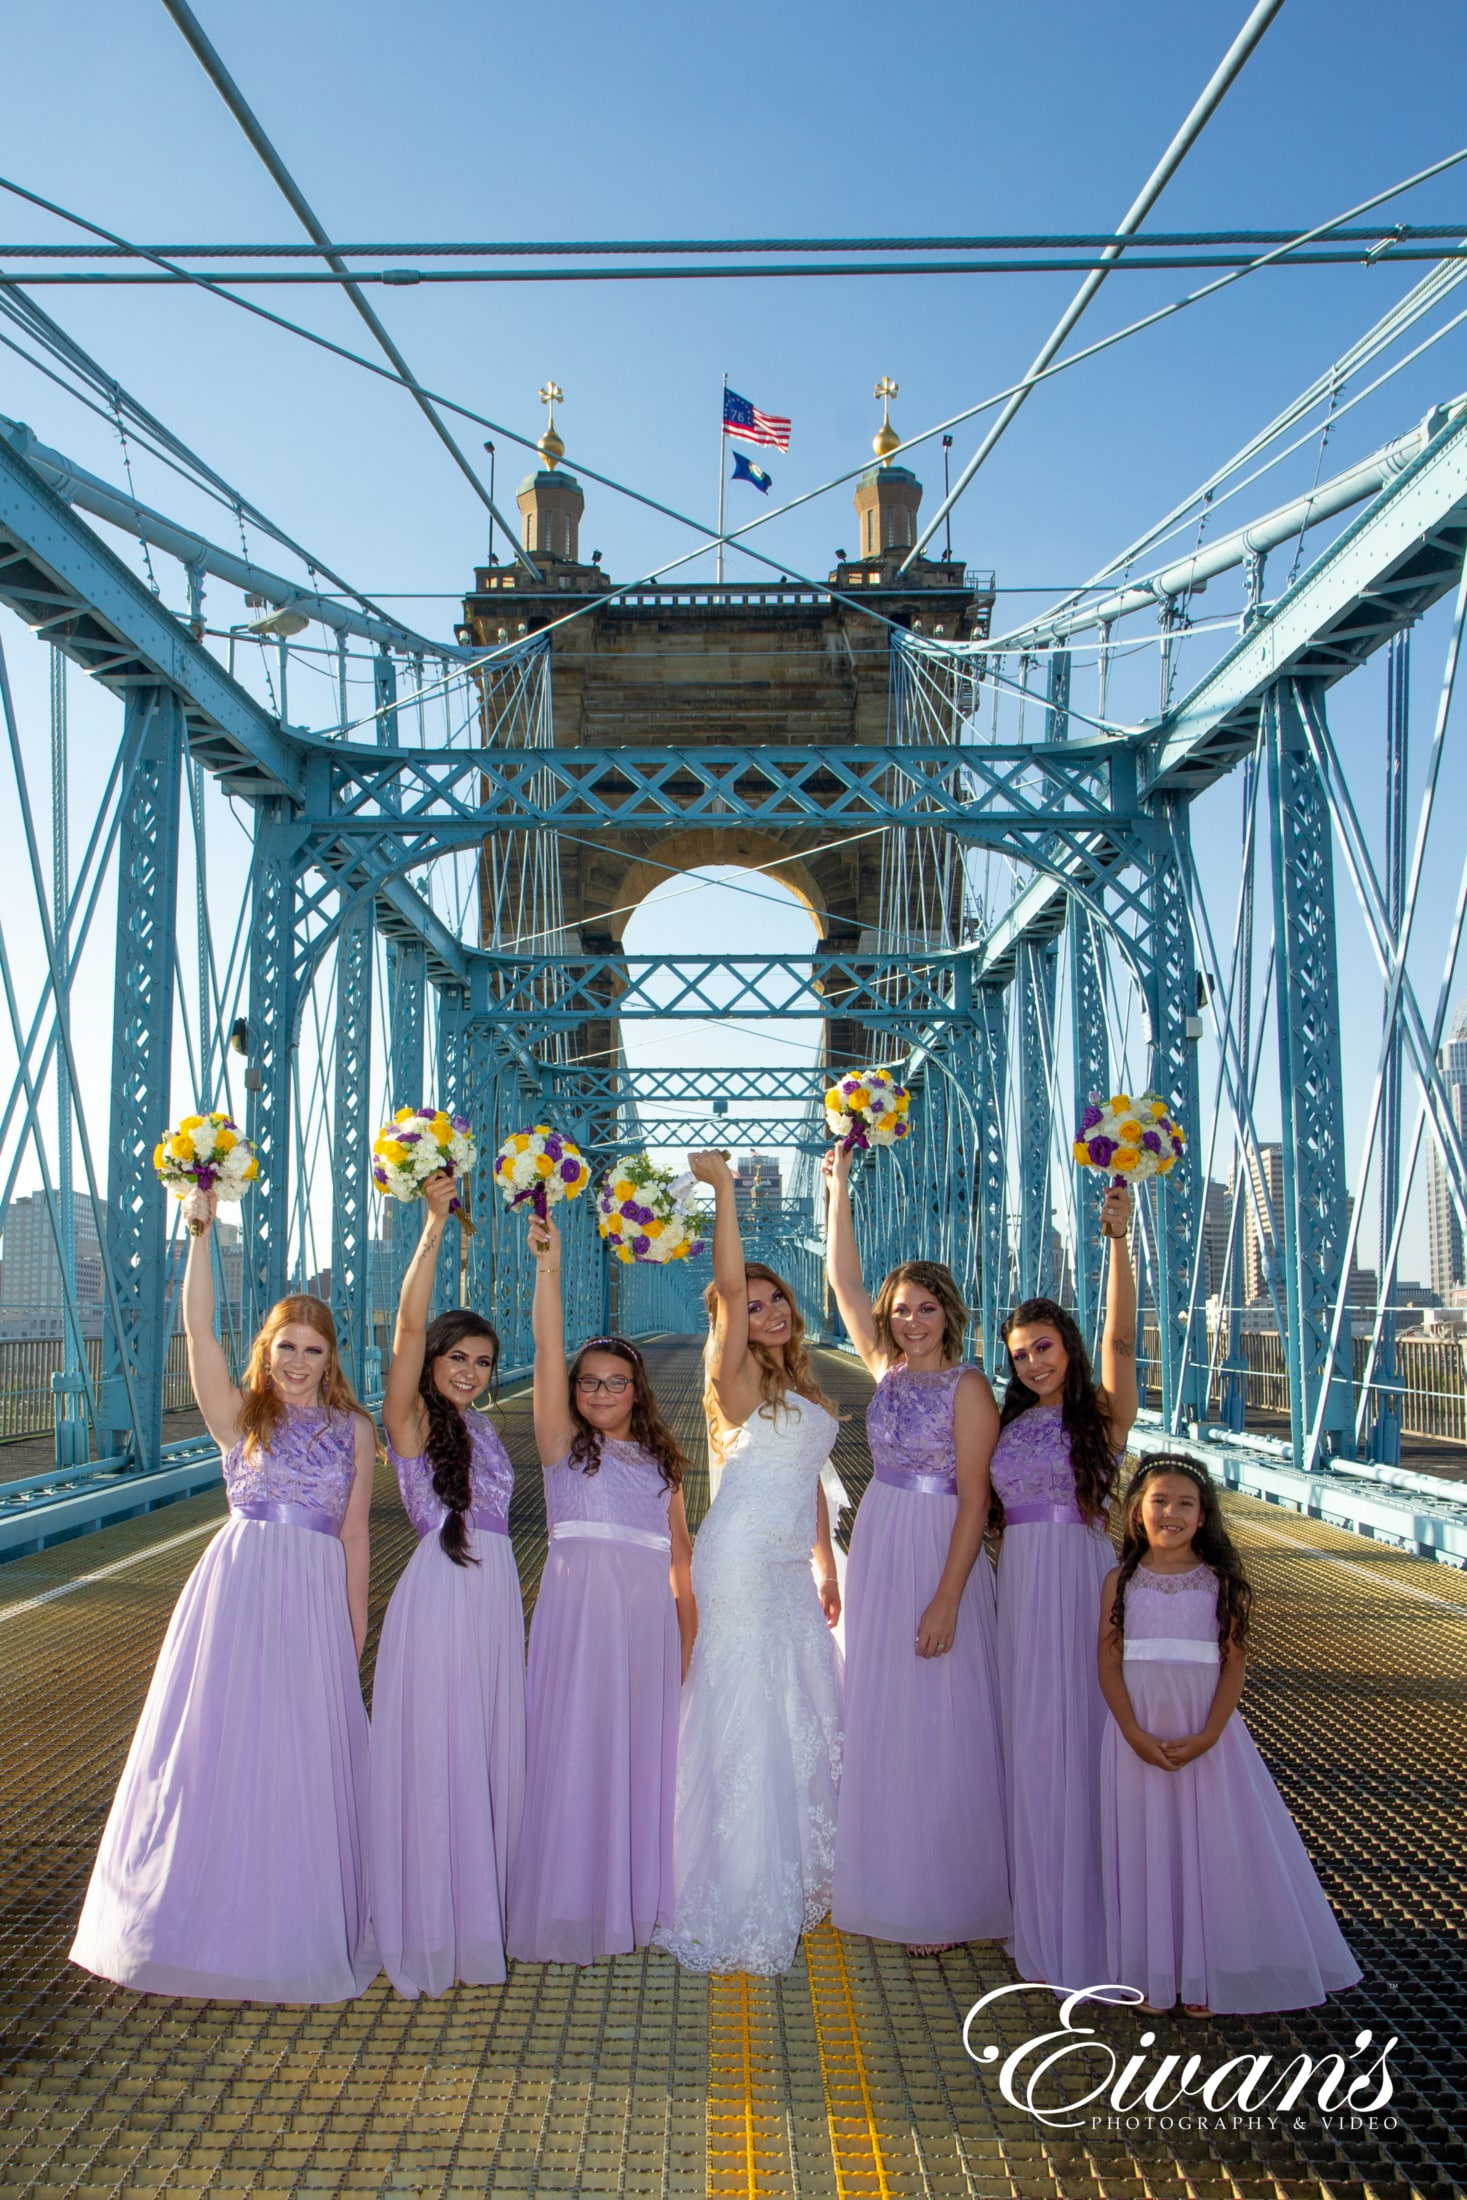 an image of a bride and her bridesmaids on the bridge